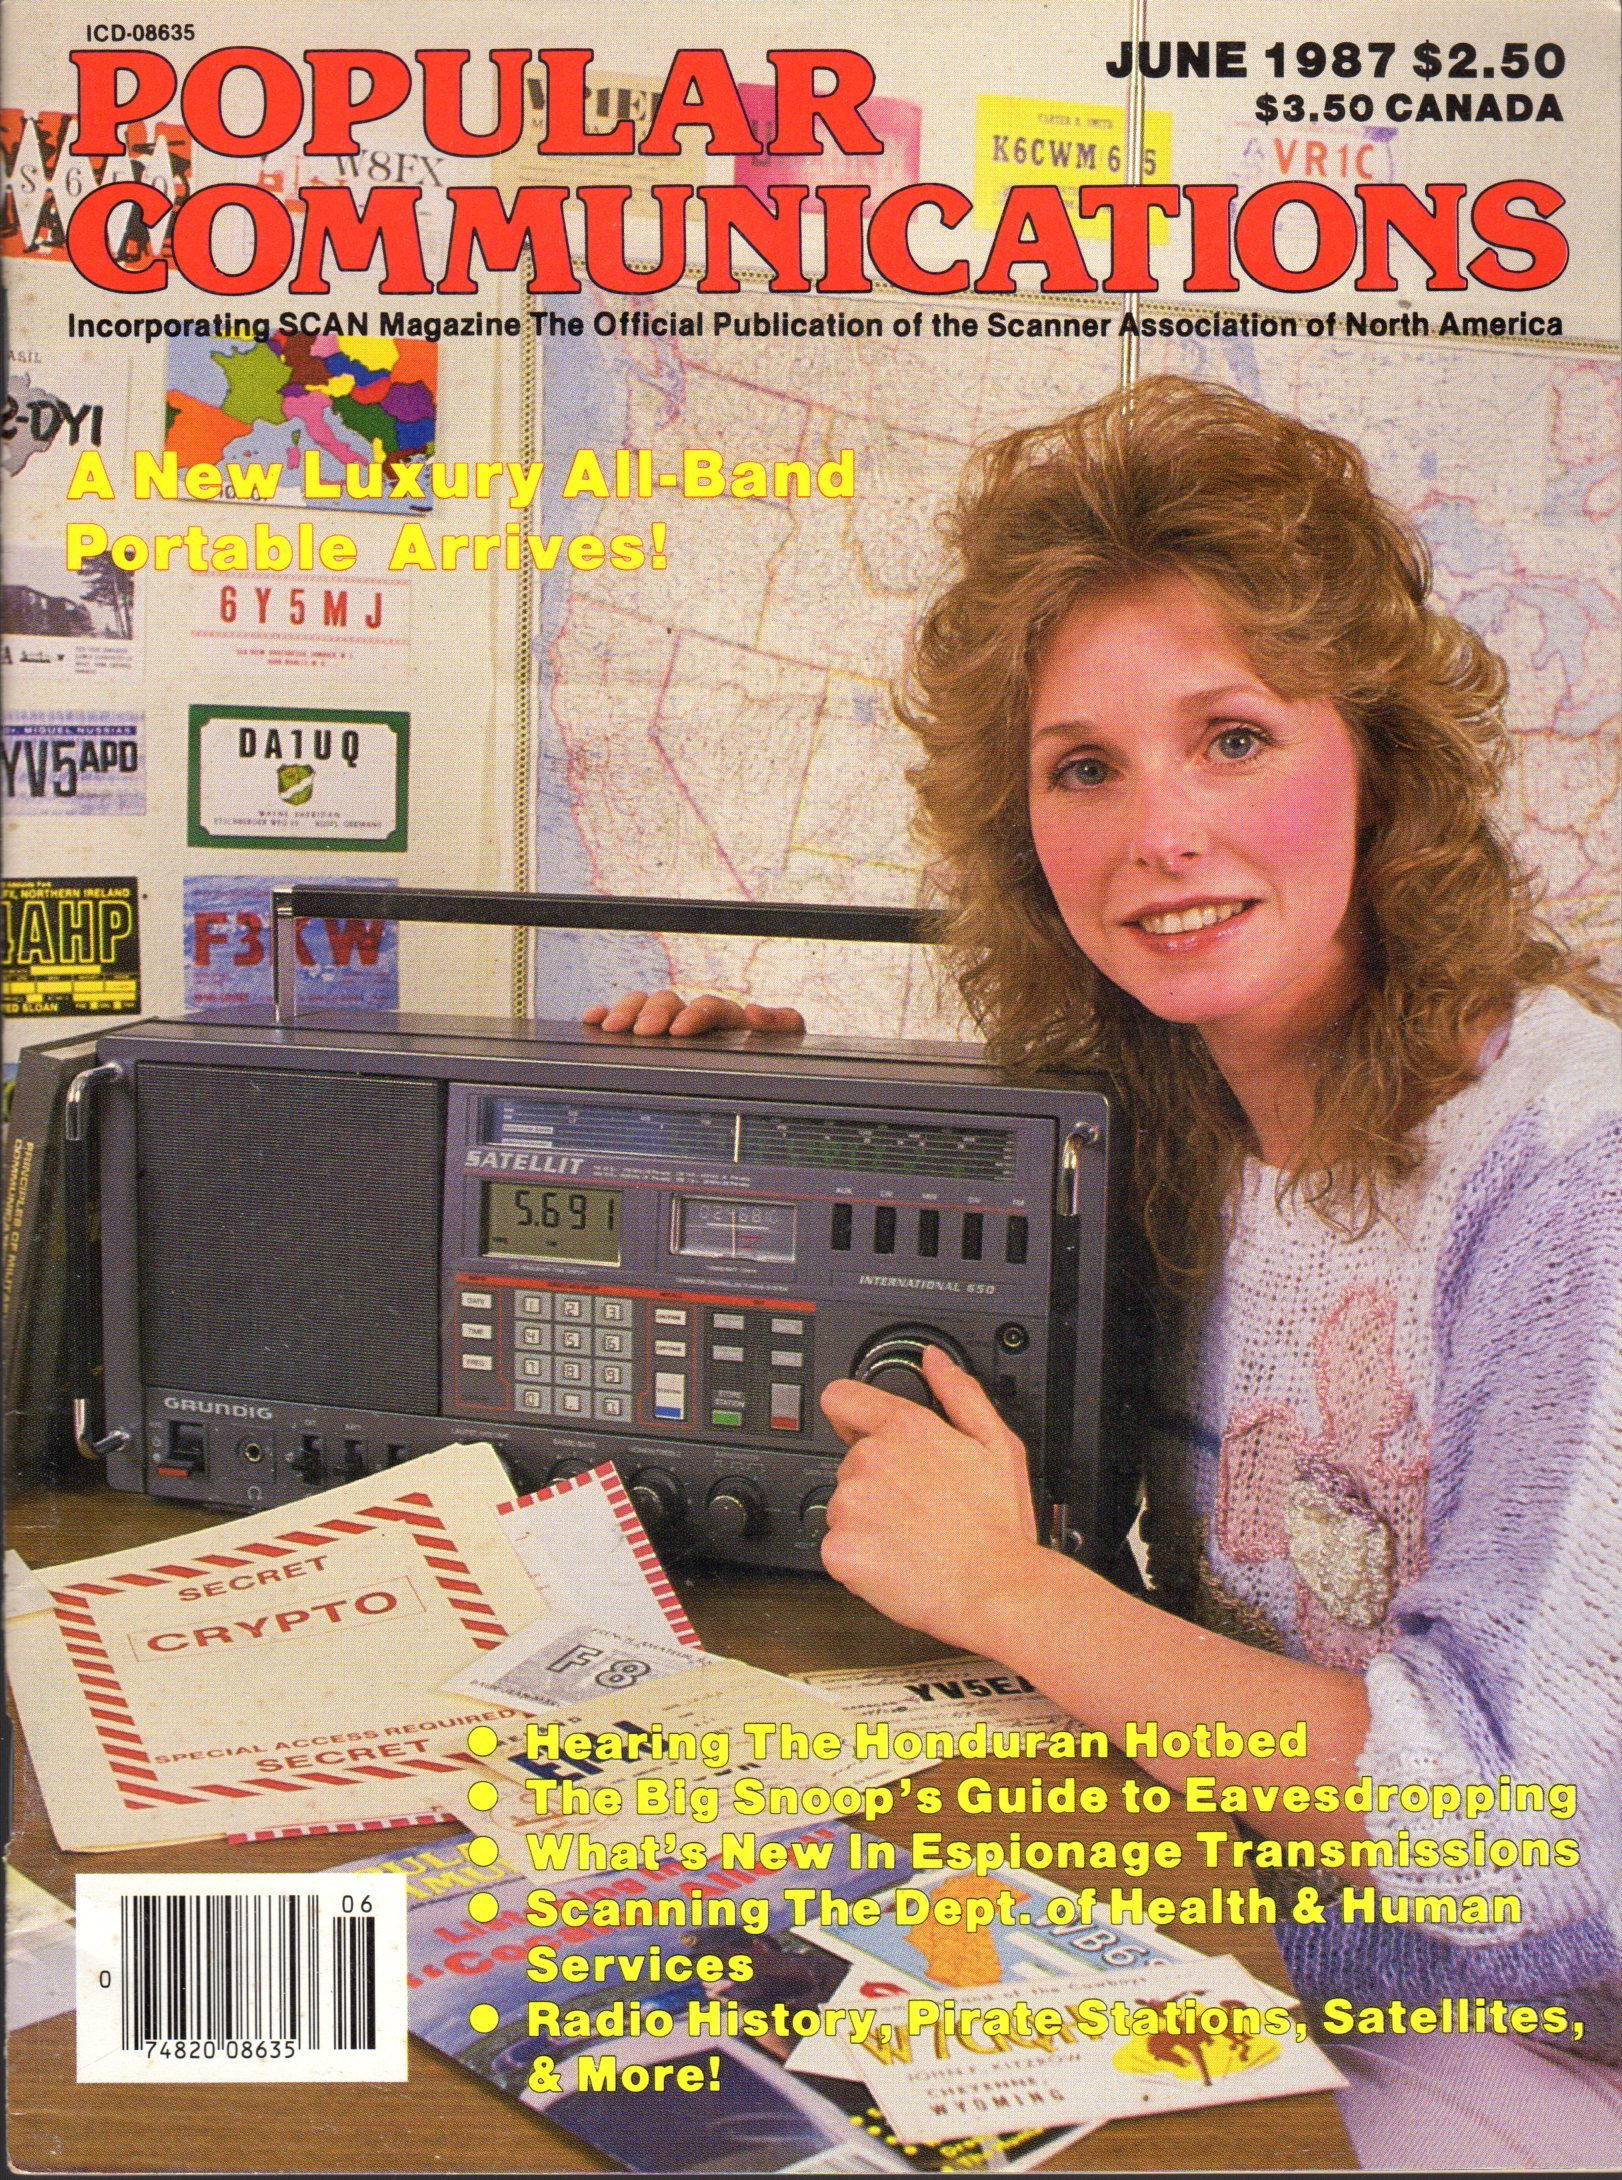 Popular Communications Magazine - Jun 1987 - Portable